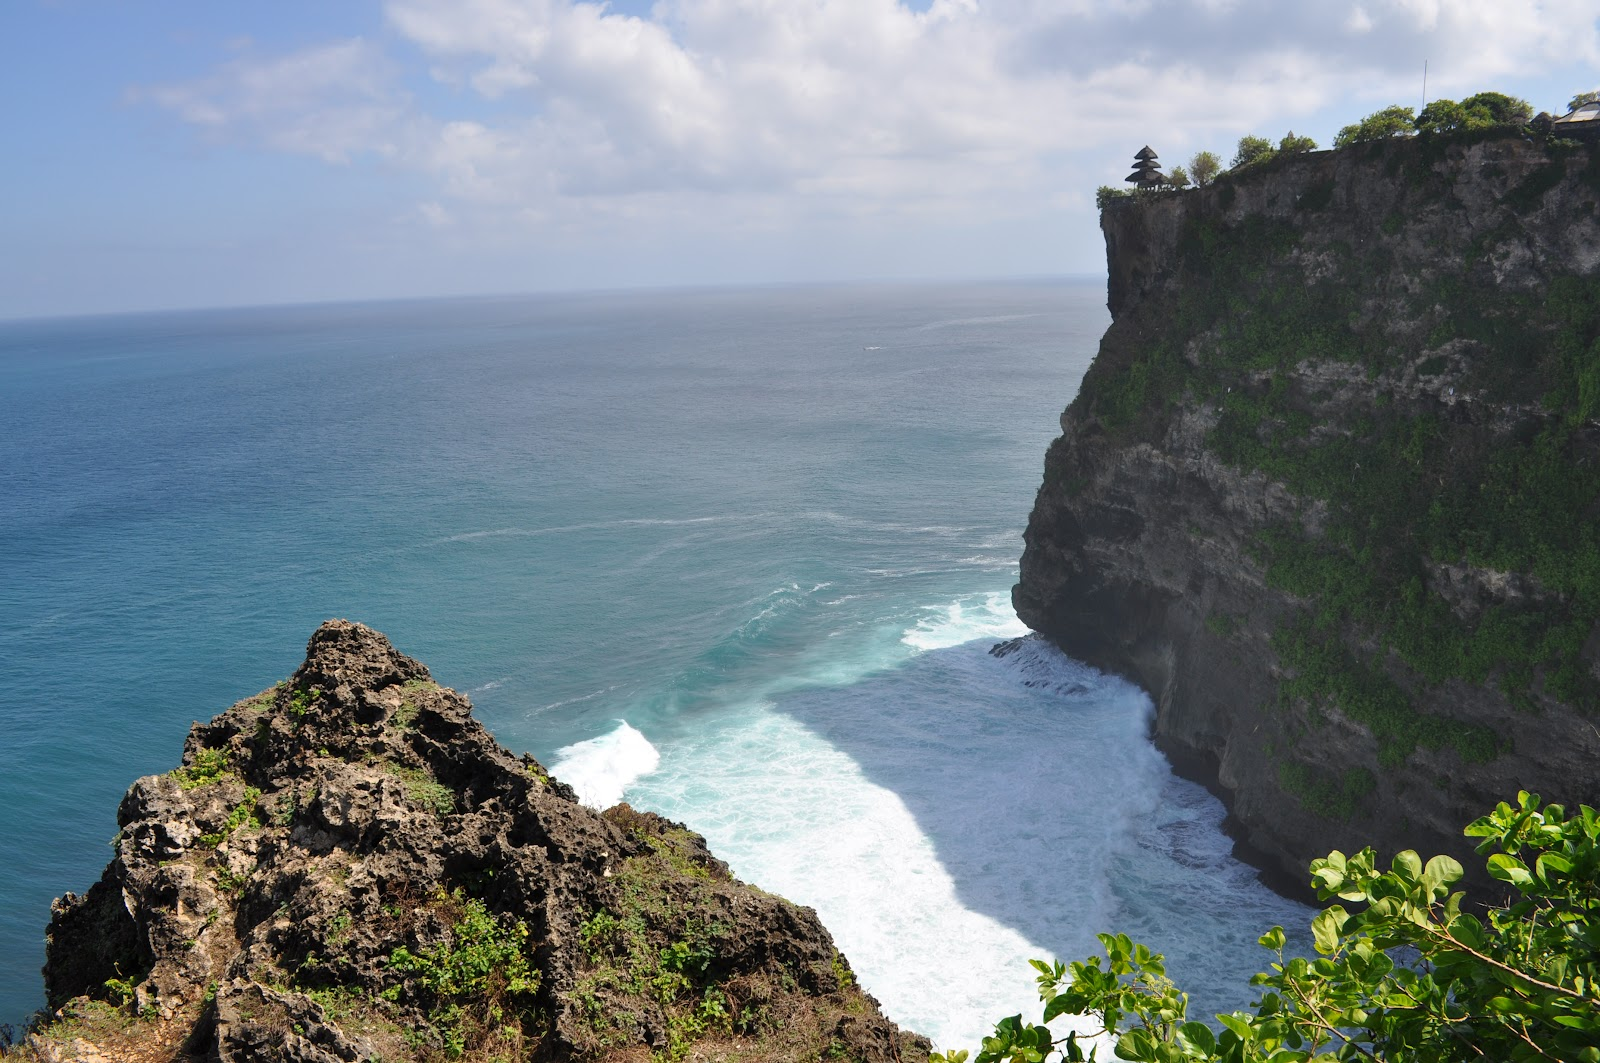 south bali buddhist temple on the edge of tall cliff overlooking blue ocean waves and green grass on a sunny day